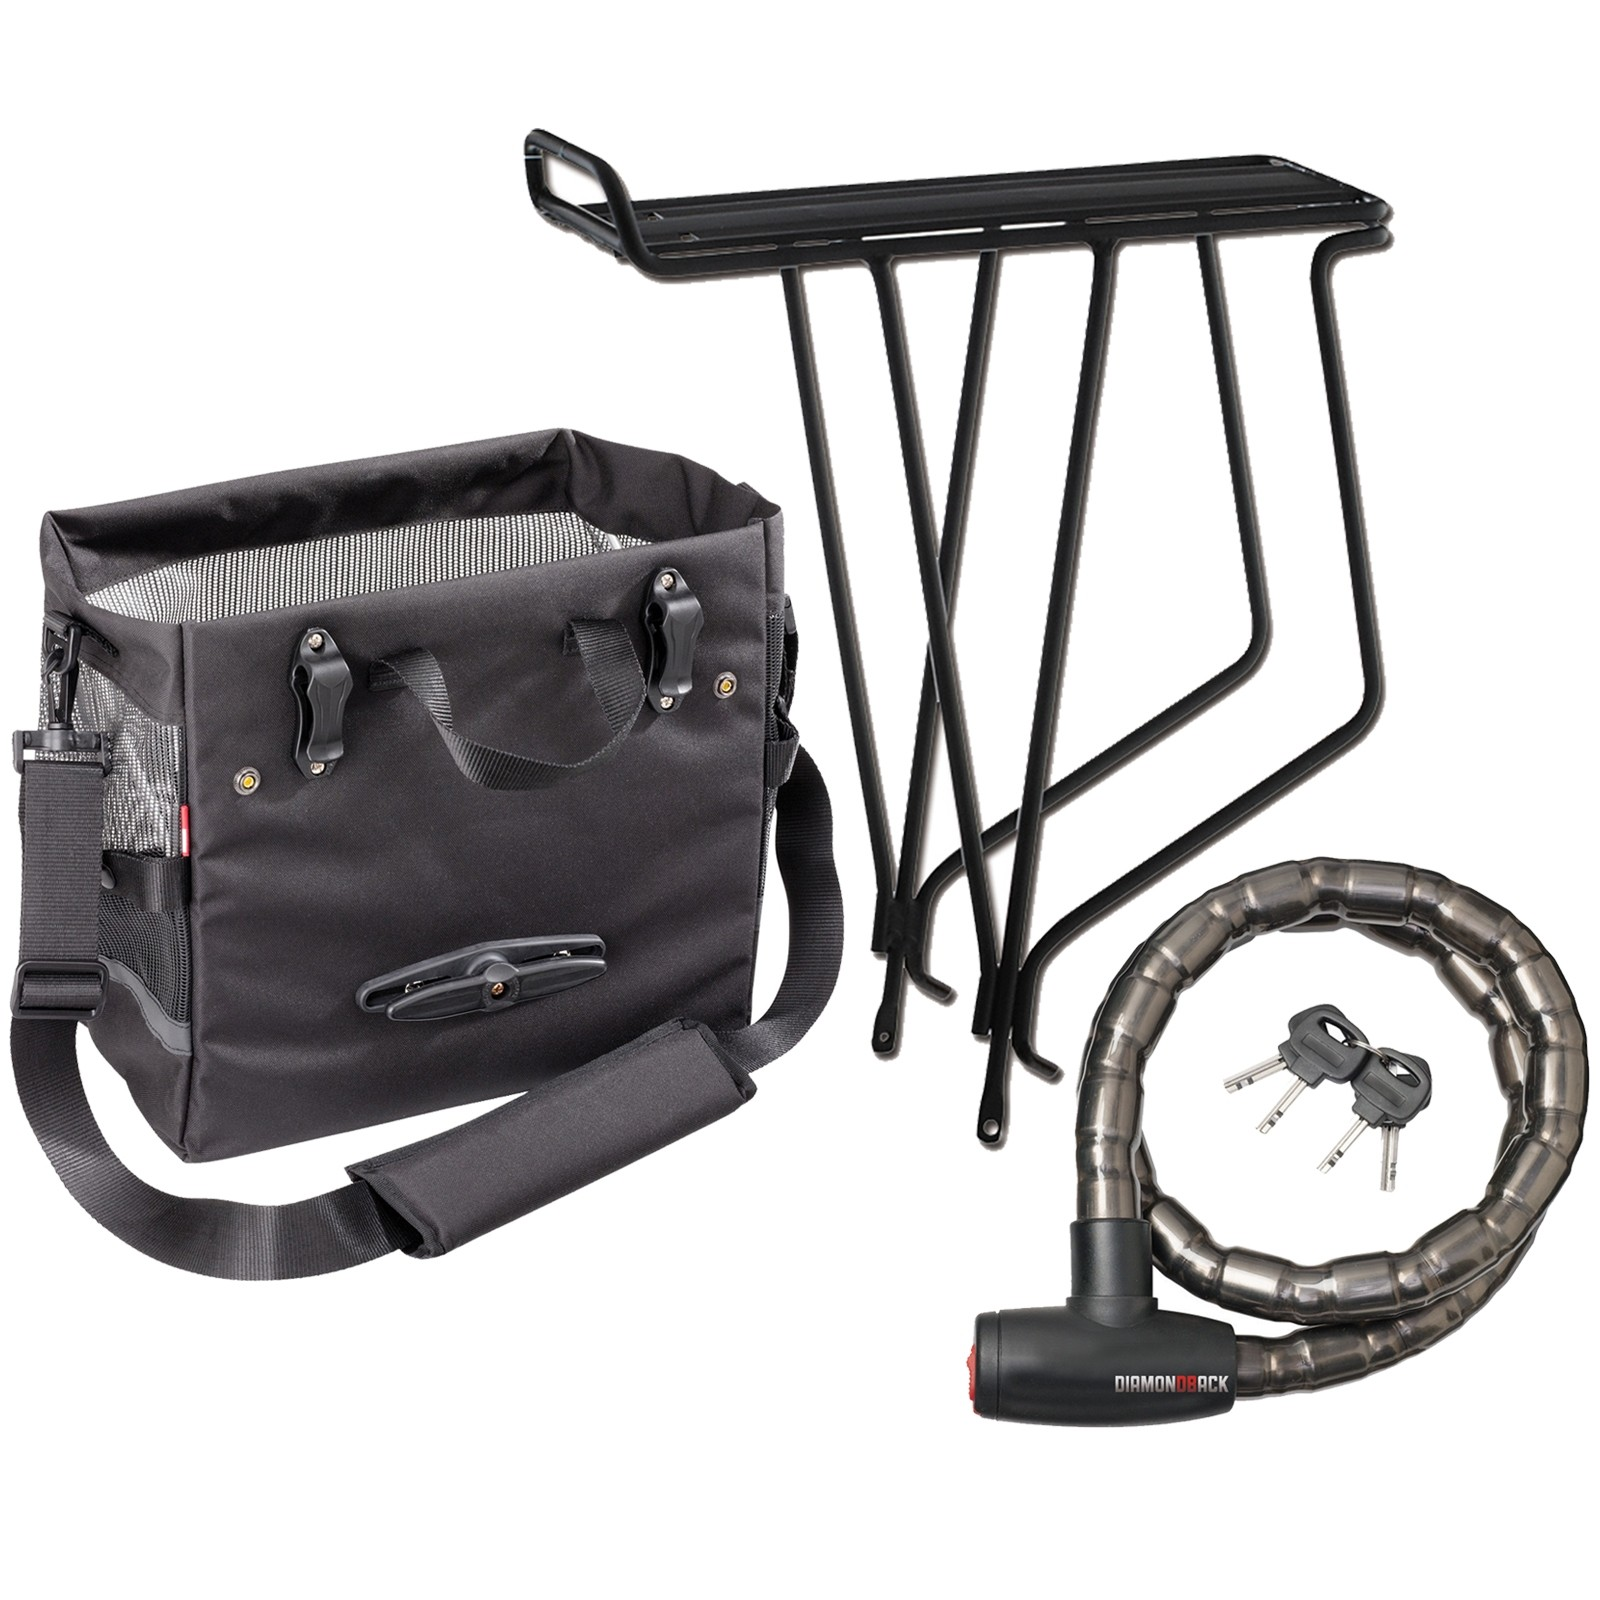 Bike rack, black pannier, and armored bike lock